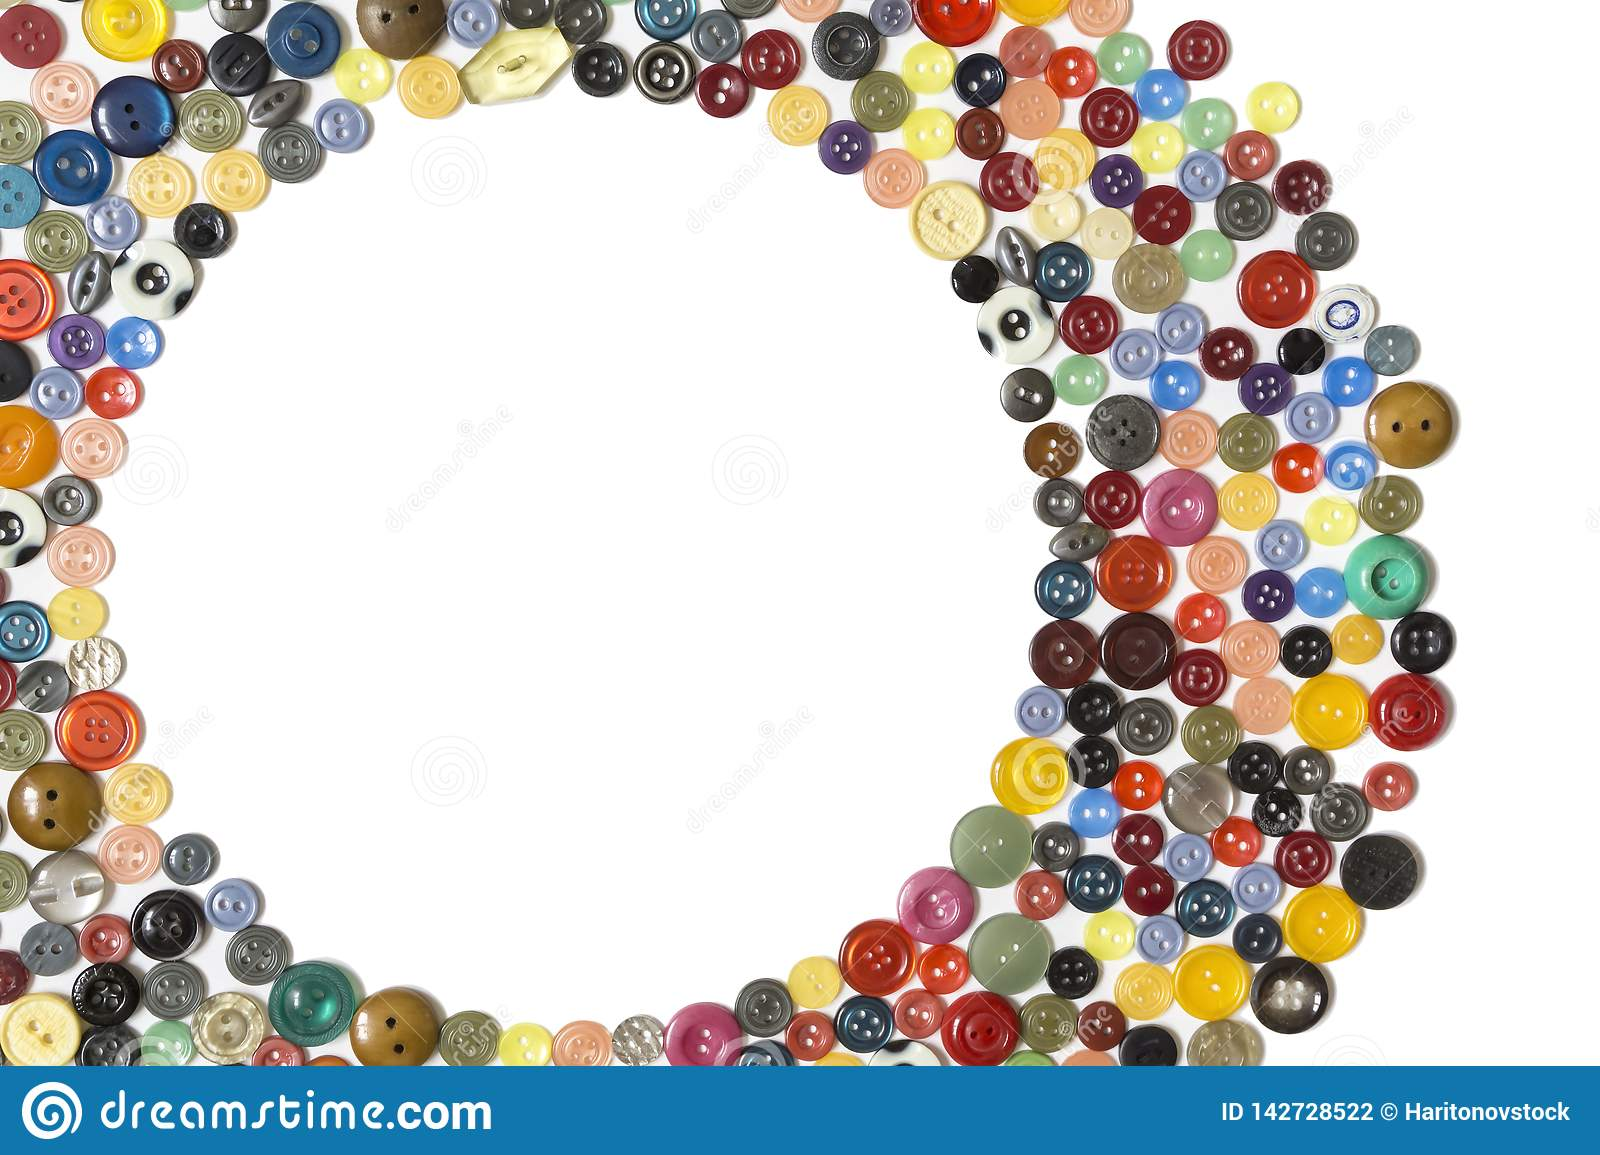 Background with round frame - multicolored buttons on a white surface. Semifinished for background with round frame - multicolored plain buttons chaotically stock photography